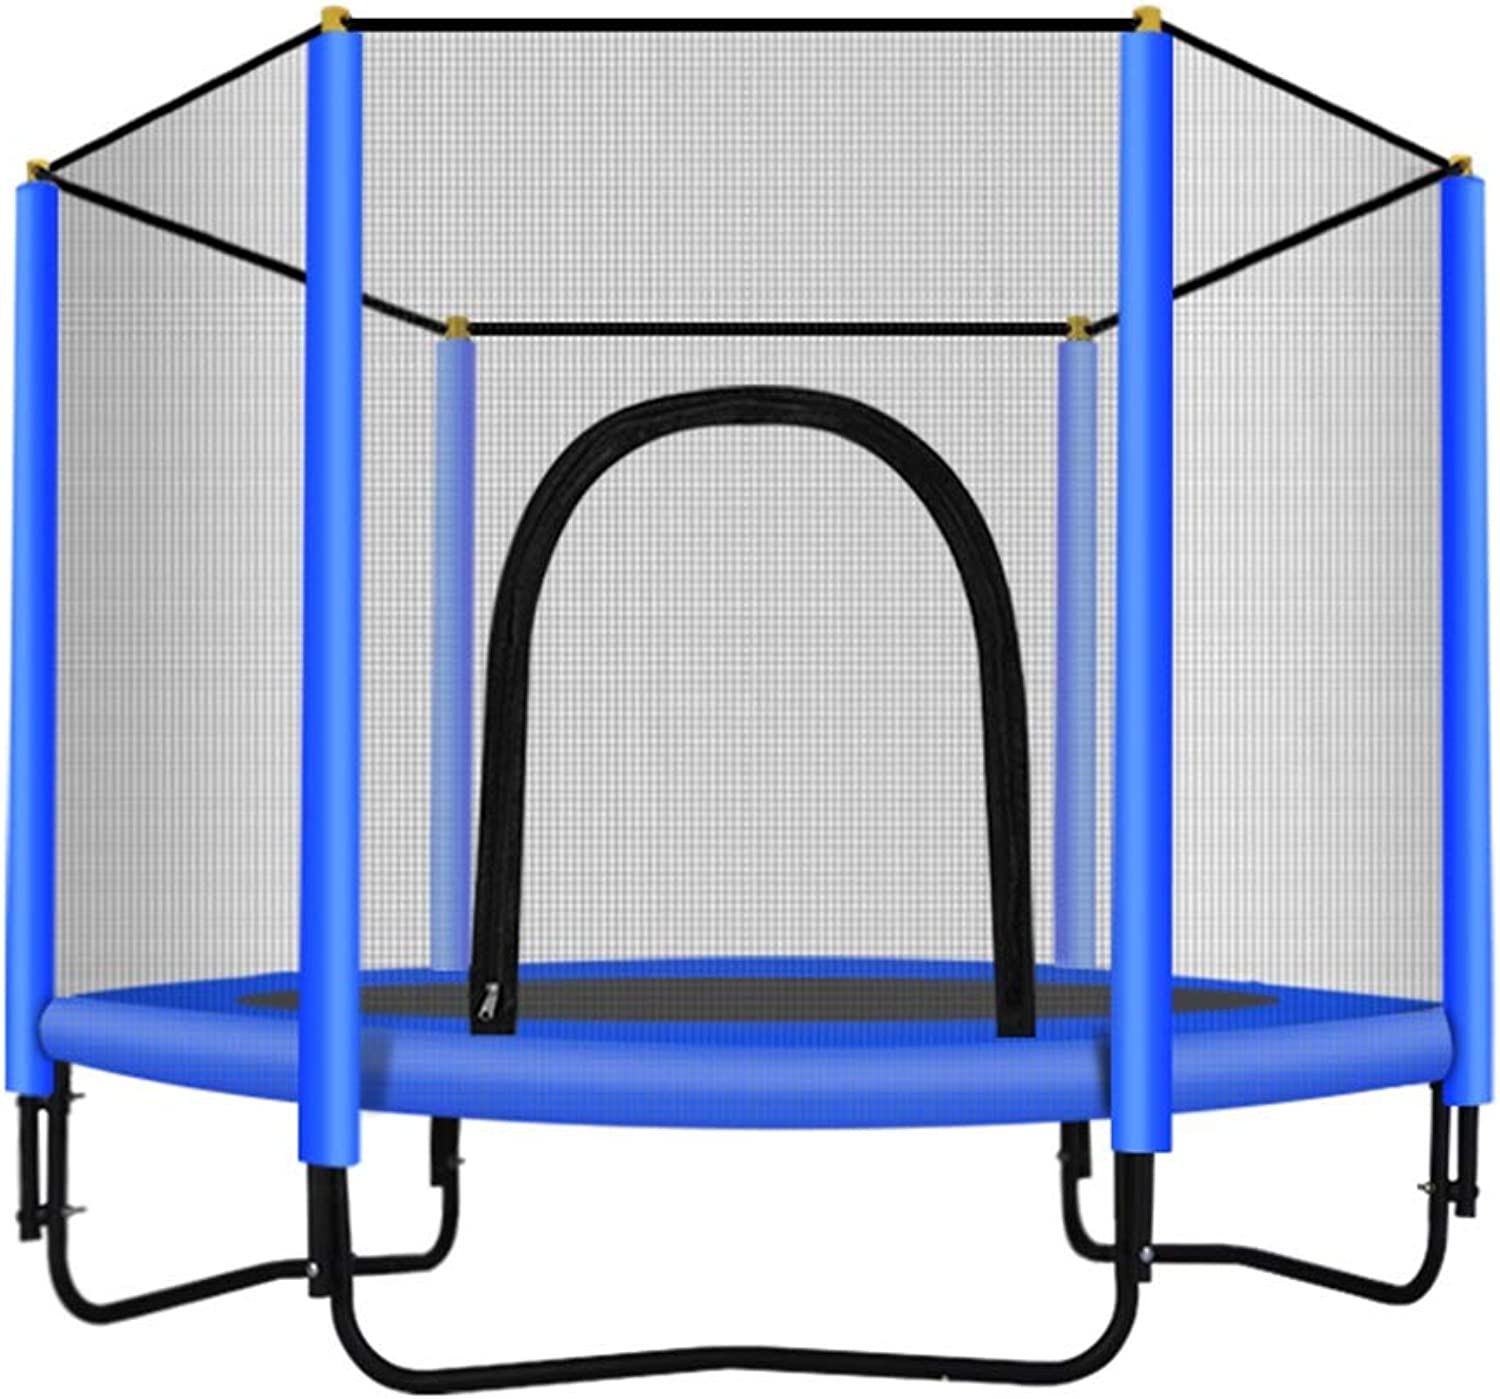 blueee Trampoline for Boys  Adult Kids Heavy Duty Jumping Mat with Enclosure Net, 200kg   440 pounds, 150cm  59 inch (color   blueee)